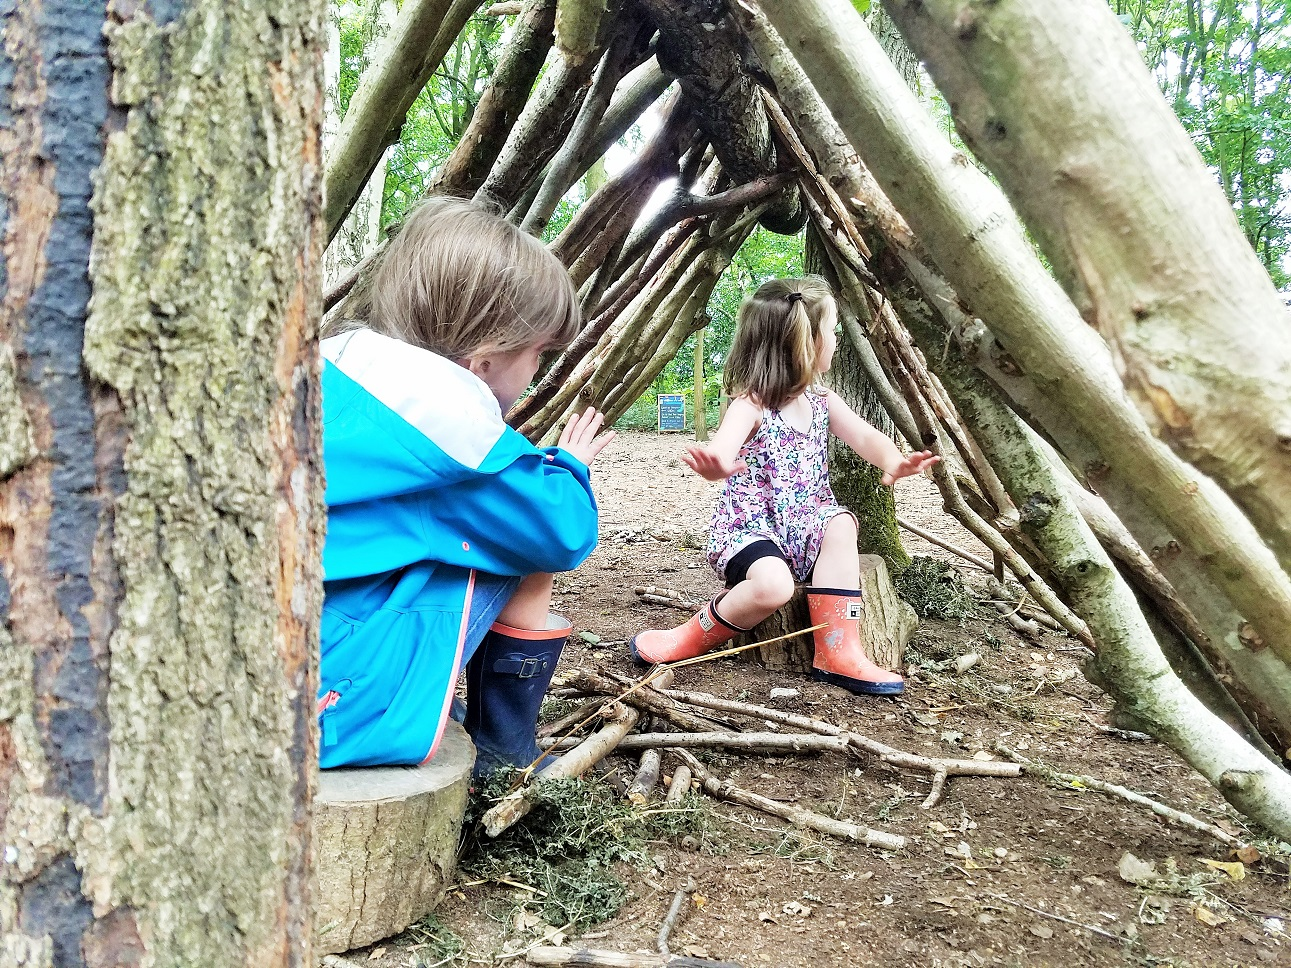 The problem with parenting advice - two children in a wigwam den of sticks